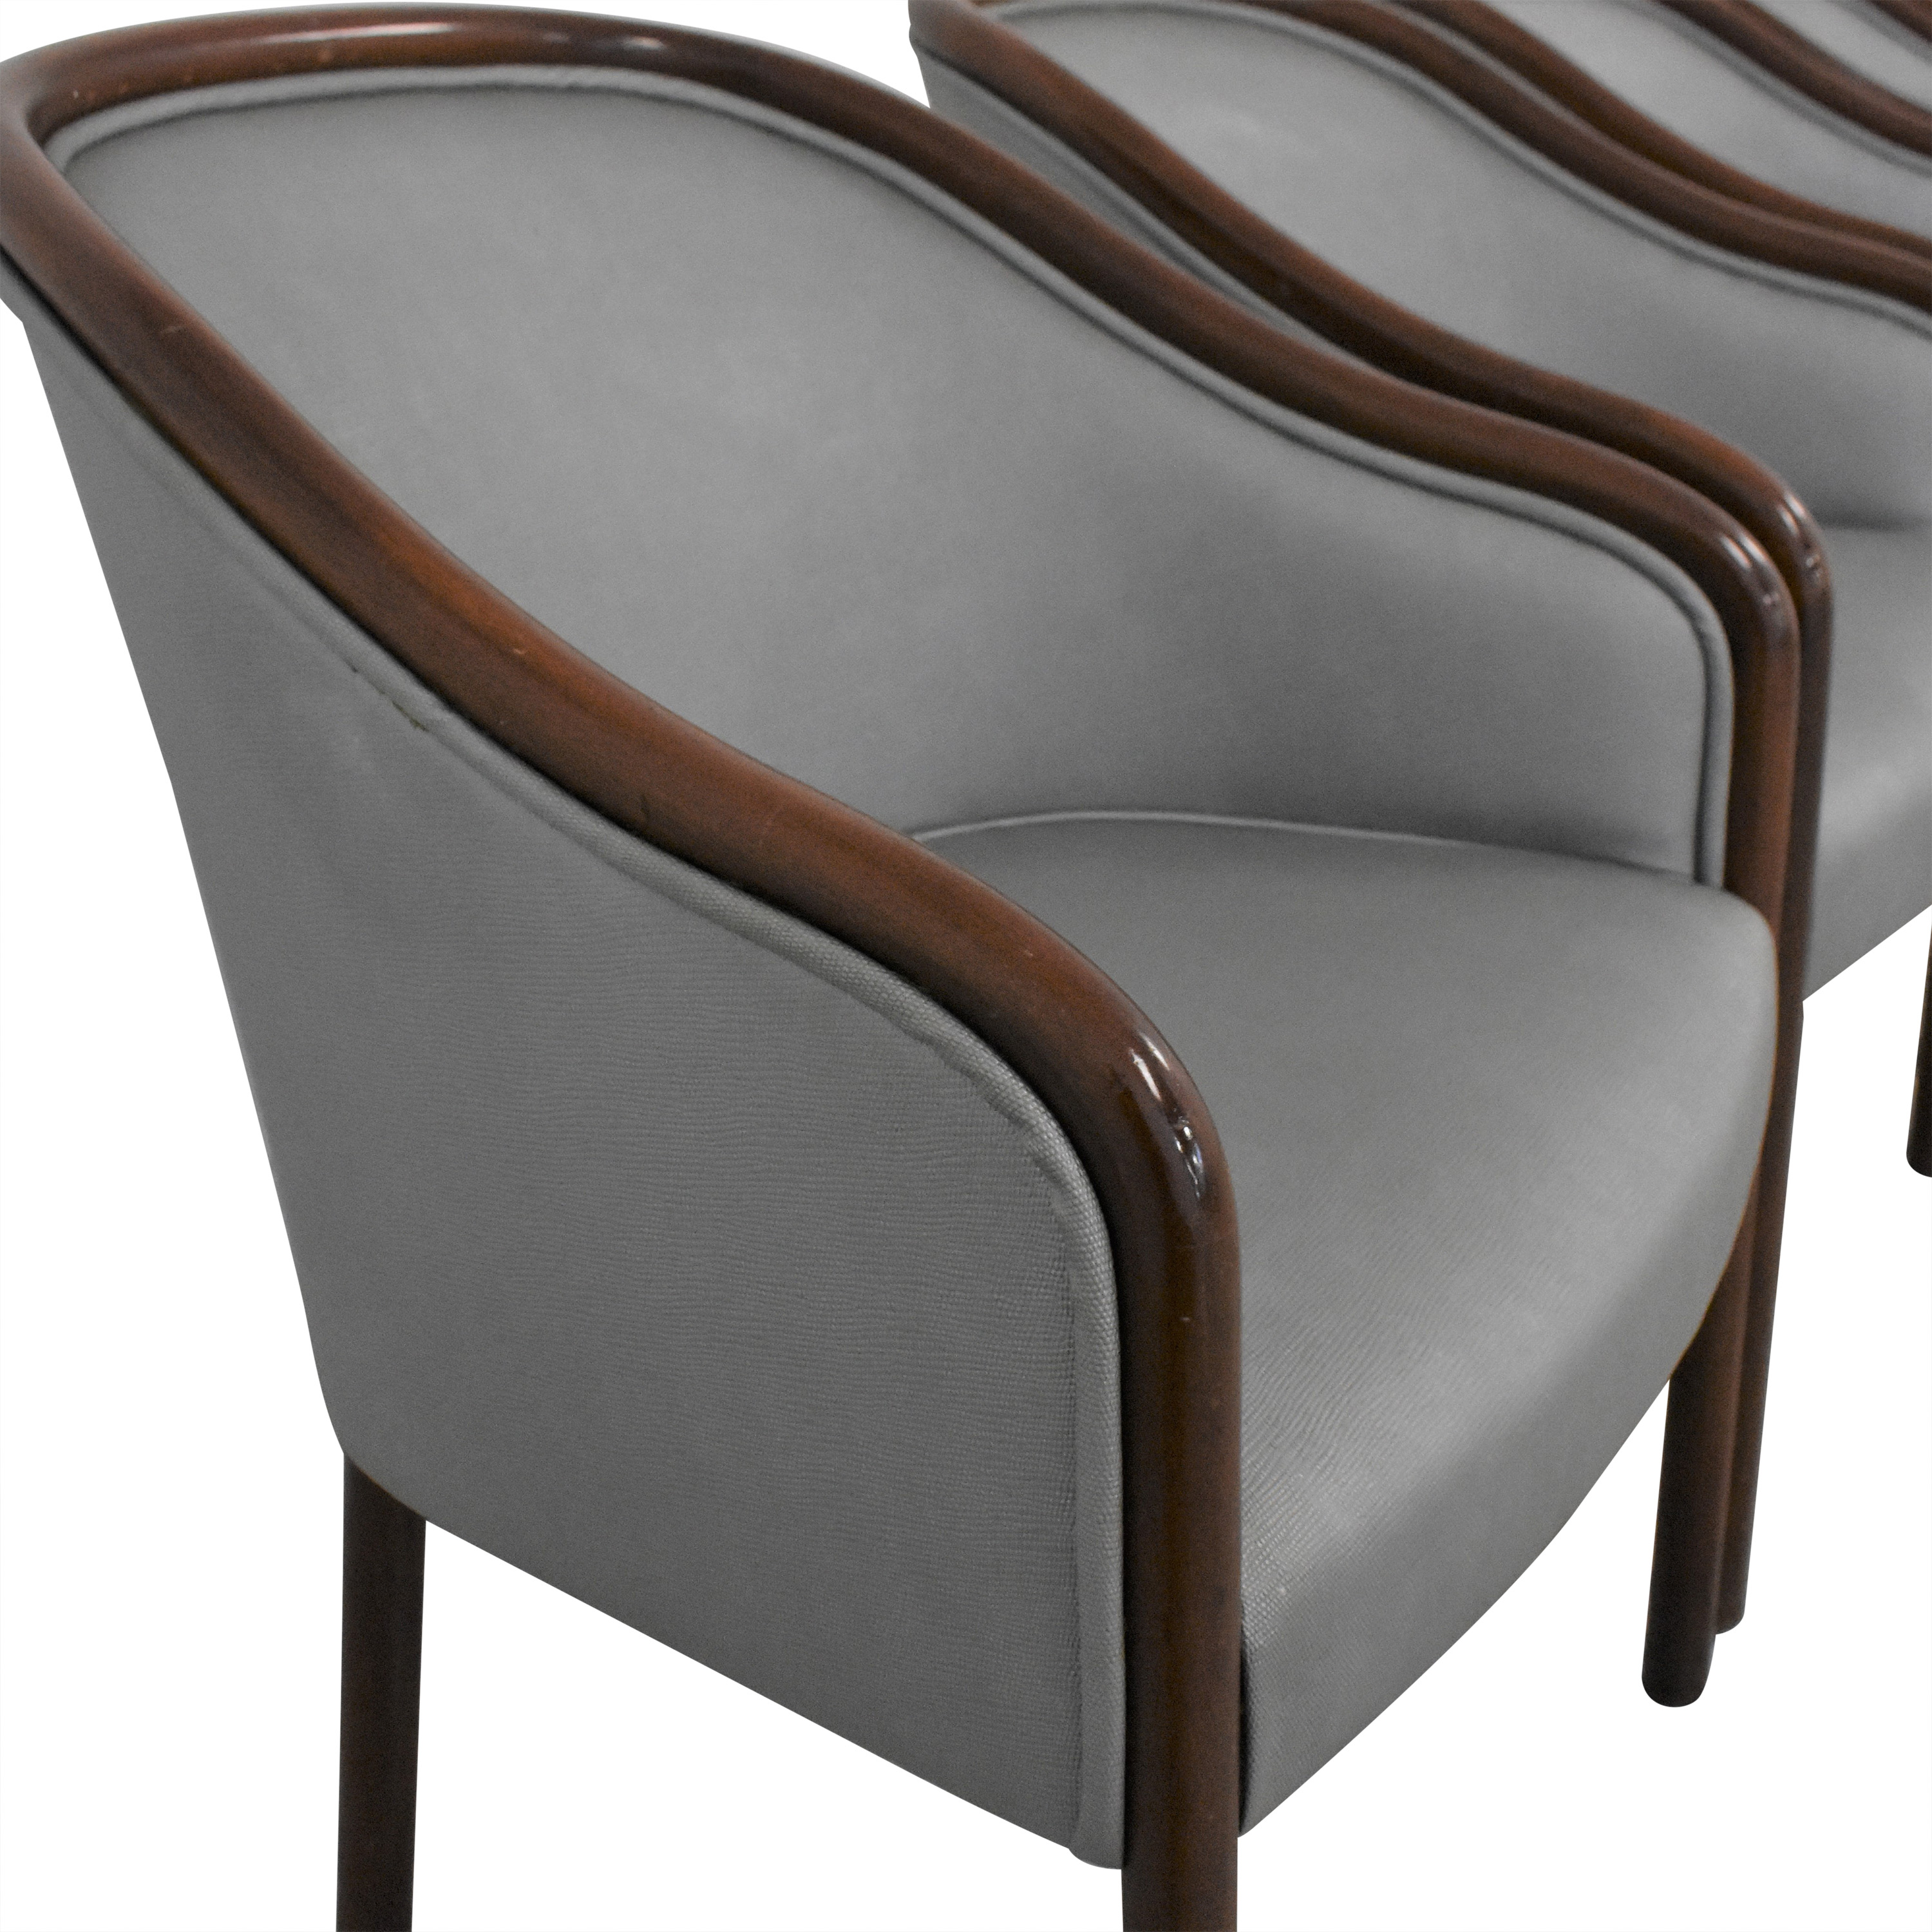 Ward Bennett Bentwood Chairs / Dining Chairs